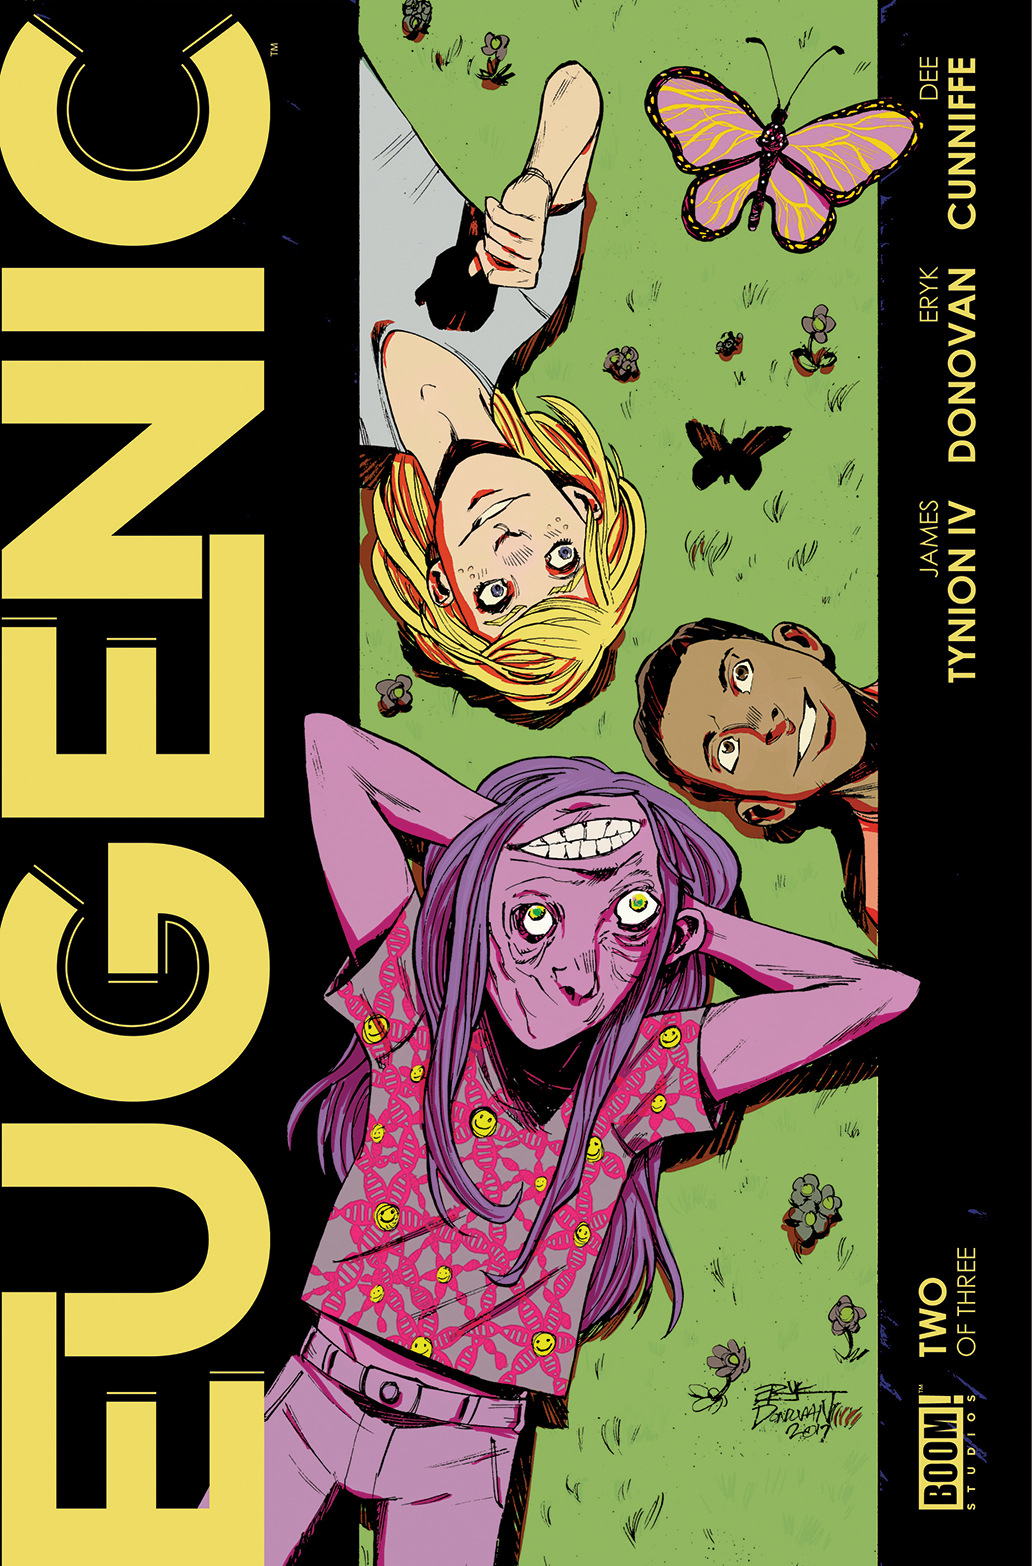 Eugenic_002_A_Main